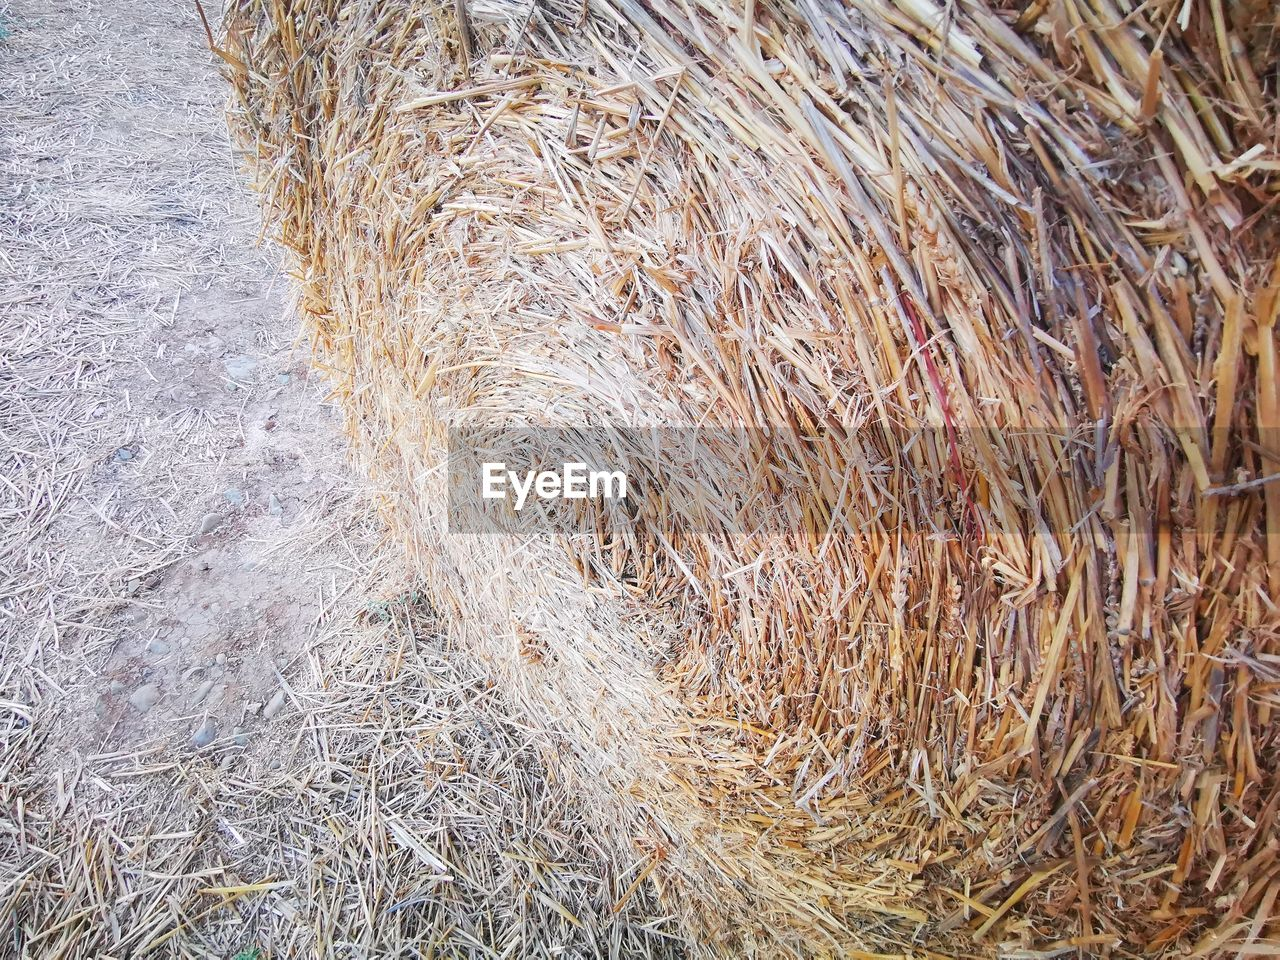 plant, day, field, land, agriculture, nature, no people, hay, dry, high angle view, grass, tranquility, outdoors, close-up, farm, bale, straw, brown, rural scene, crop, dried